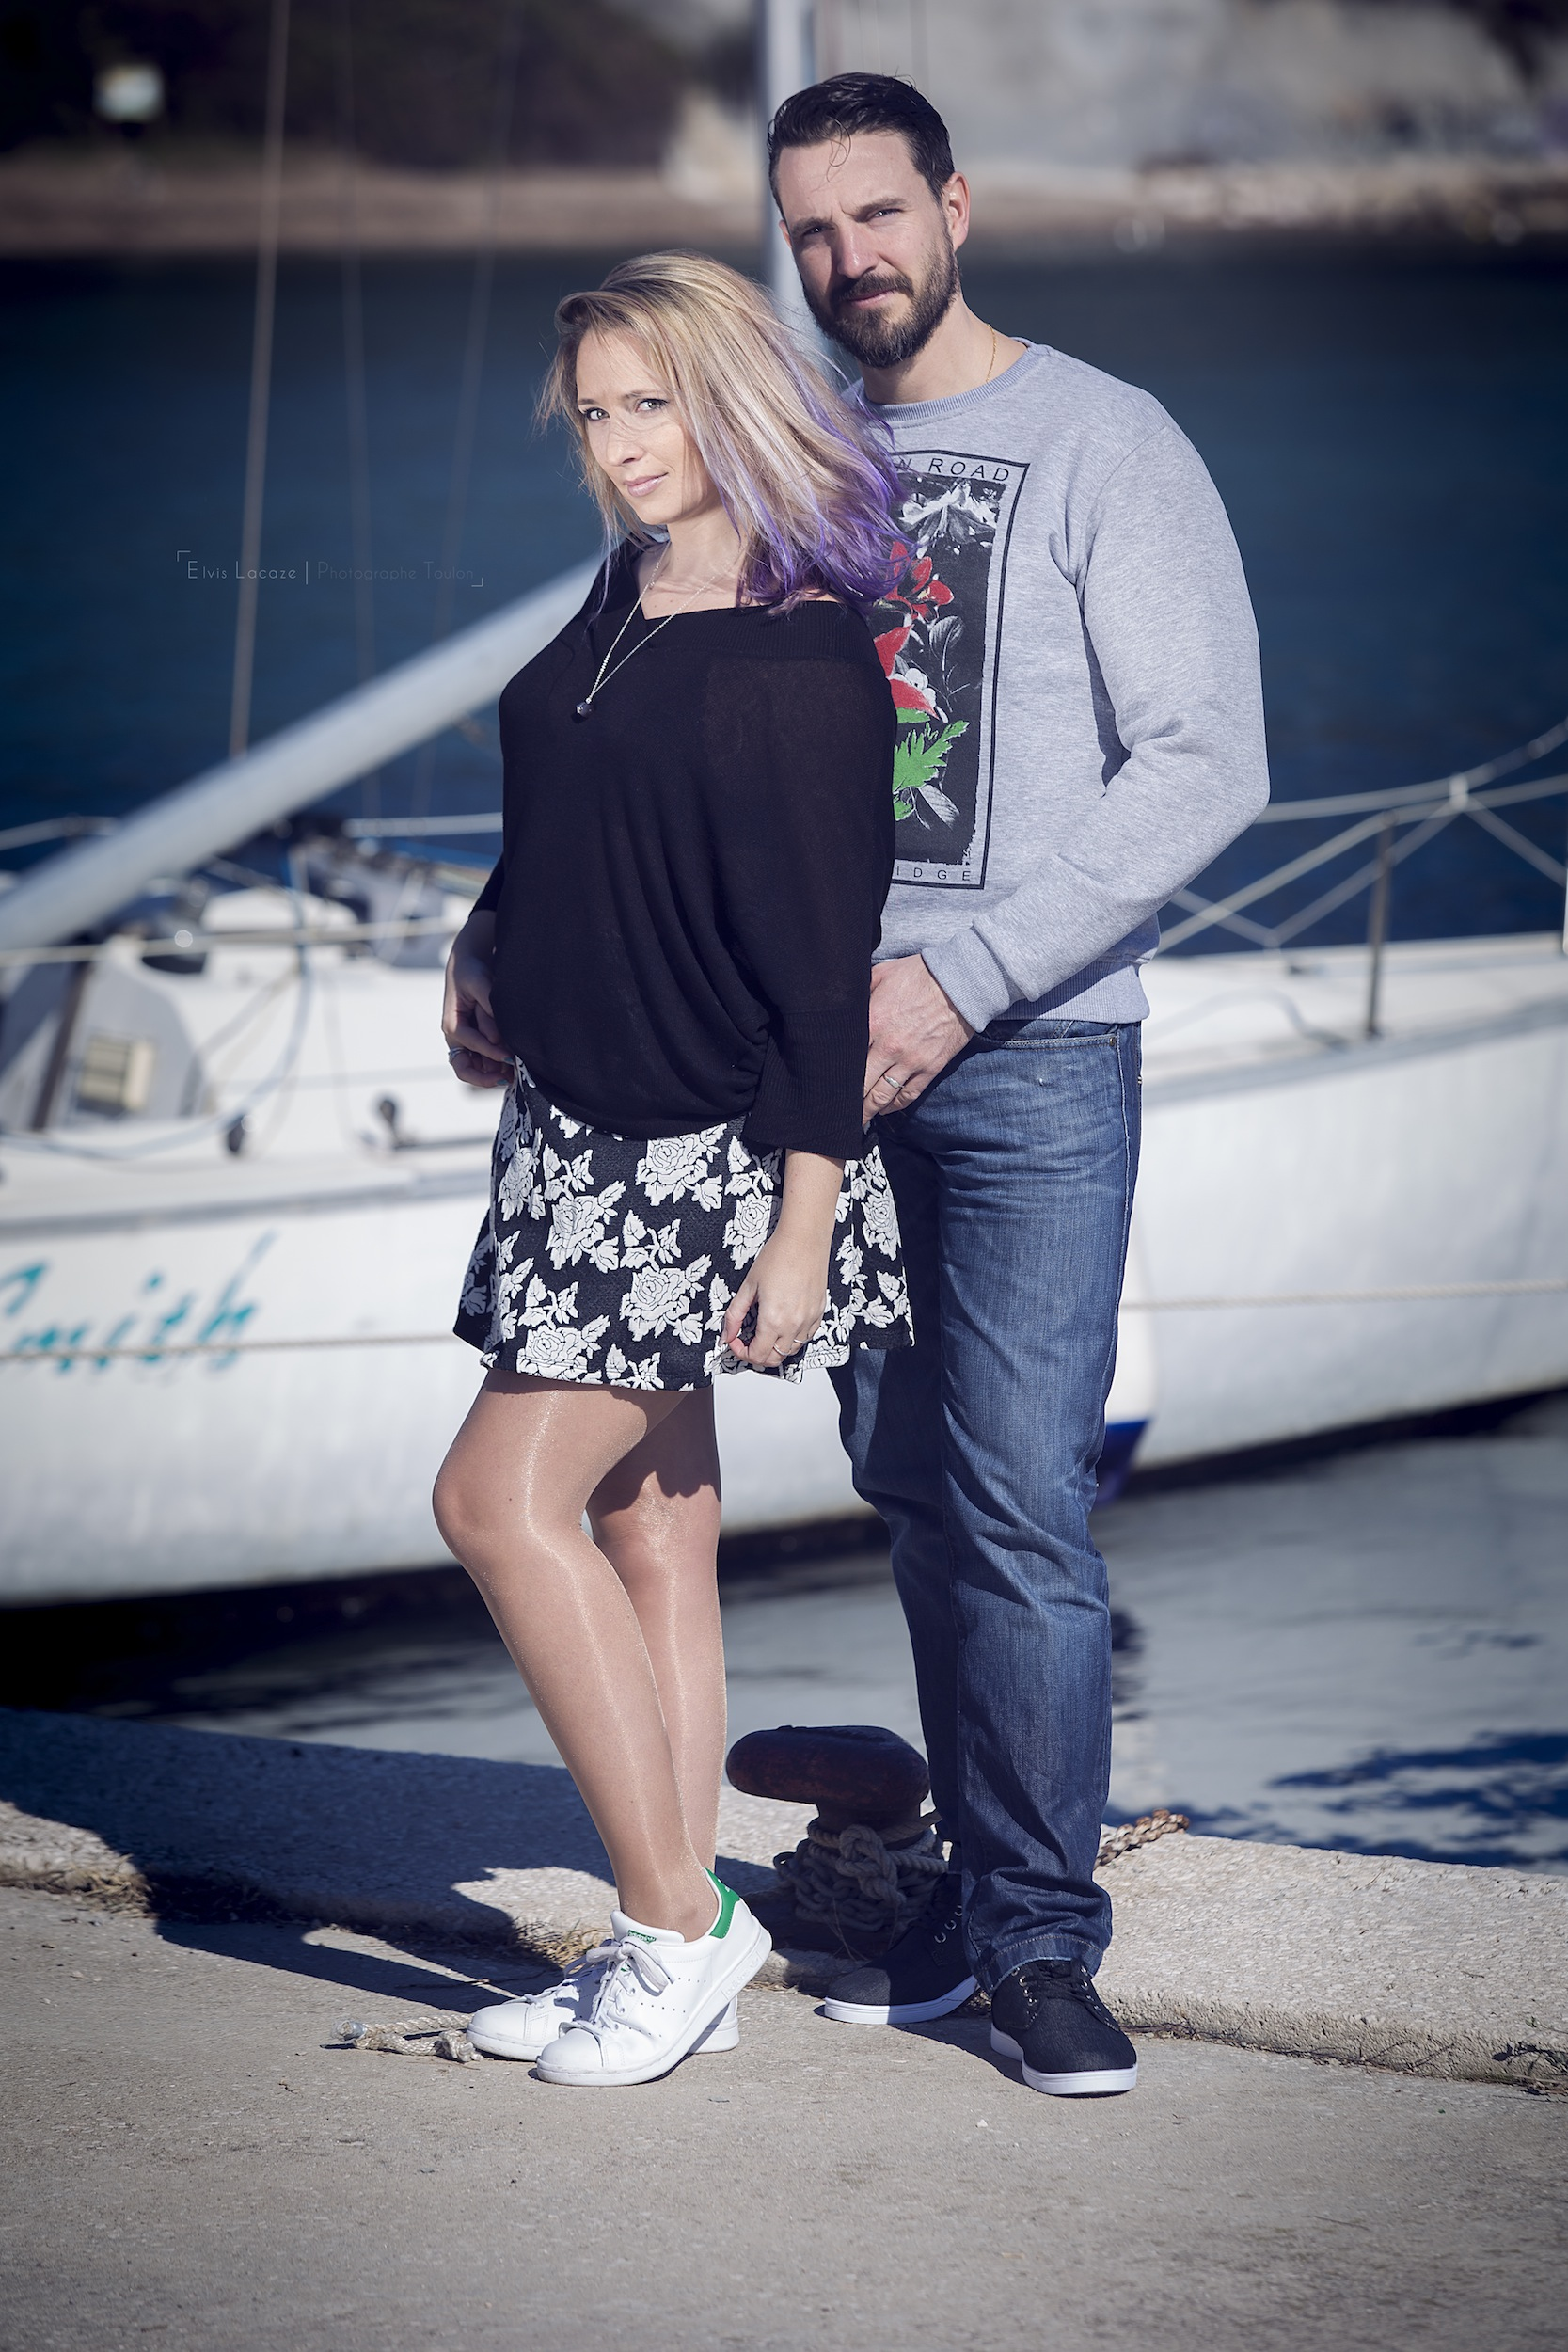 toulon_couple_tati_look_ootd